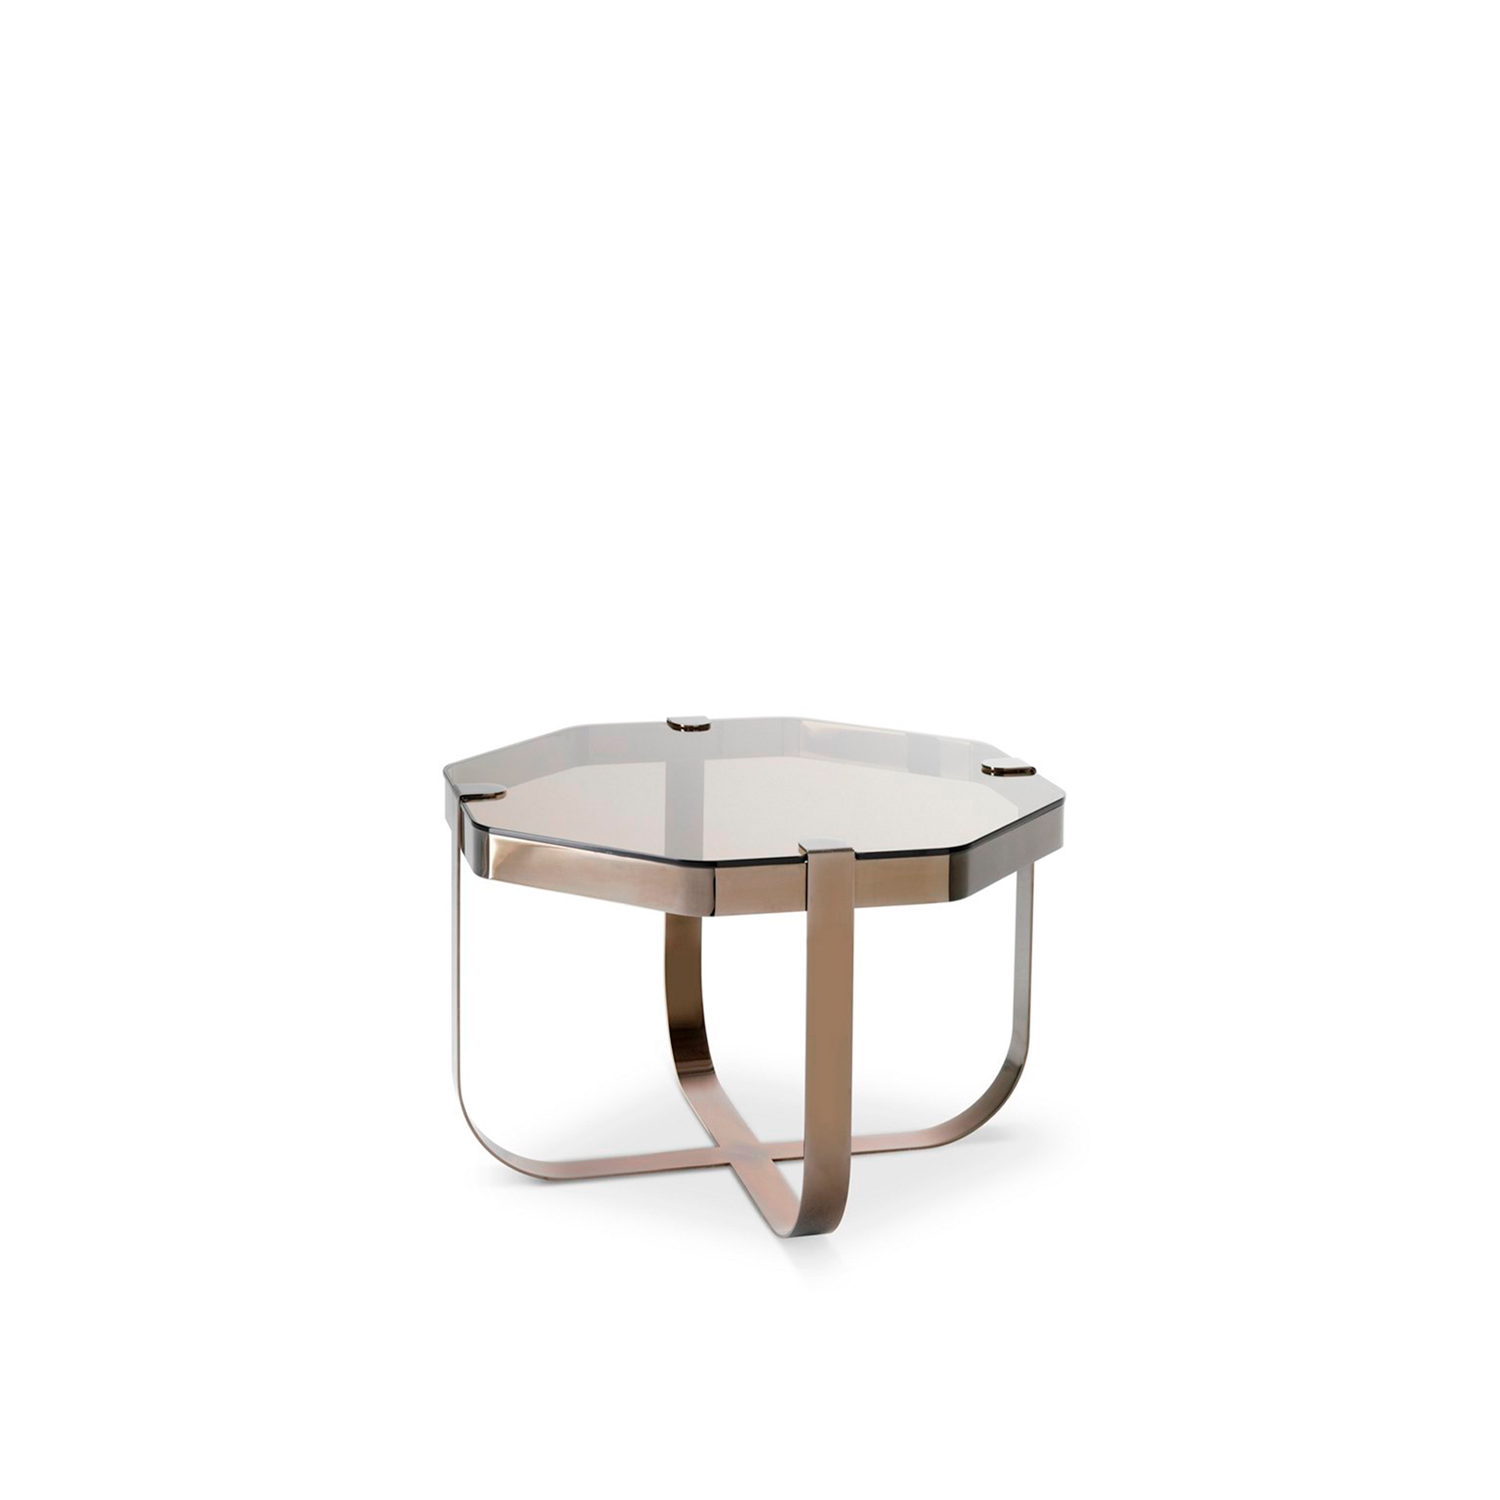 Ring Octagonal Coffee Table - Elegant like jewellery, the Ring coffee tables are inspired by raw cuts of precious stones prior to being mounted into rings. The choice of materials is aimed to emphasise this inspiration behind the collection. The metal base structures are available in copper, brass, steel and nickel, each of which corresponds to a geometric form. Like in jewellery design, the glass tops in transparent or light colours are literally set onto the base structures.  Finishing: Round coffee table polished copper structure - smoked glass top; Square coffee table satin finished brass structure - extra clear glass top; Octagonal coffee table black nickel structure - bronze glass top; Oval coffee table clear chrome structure - sea water glass. | Matter of Stuff